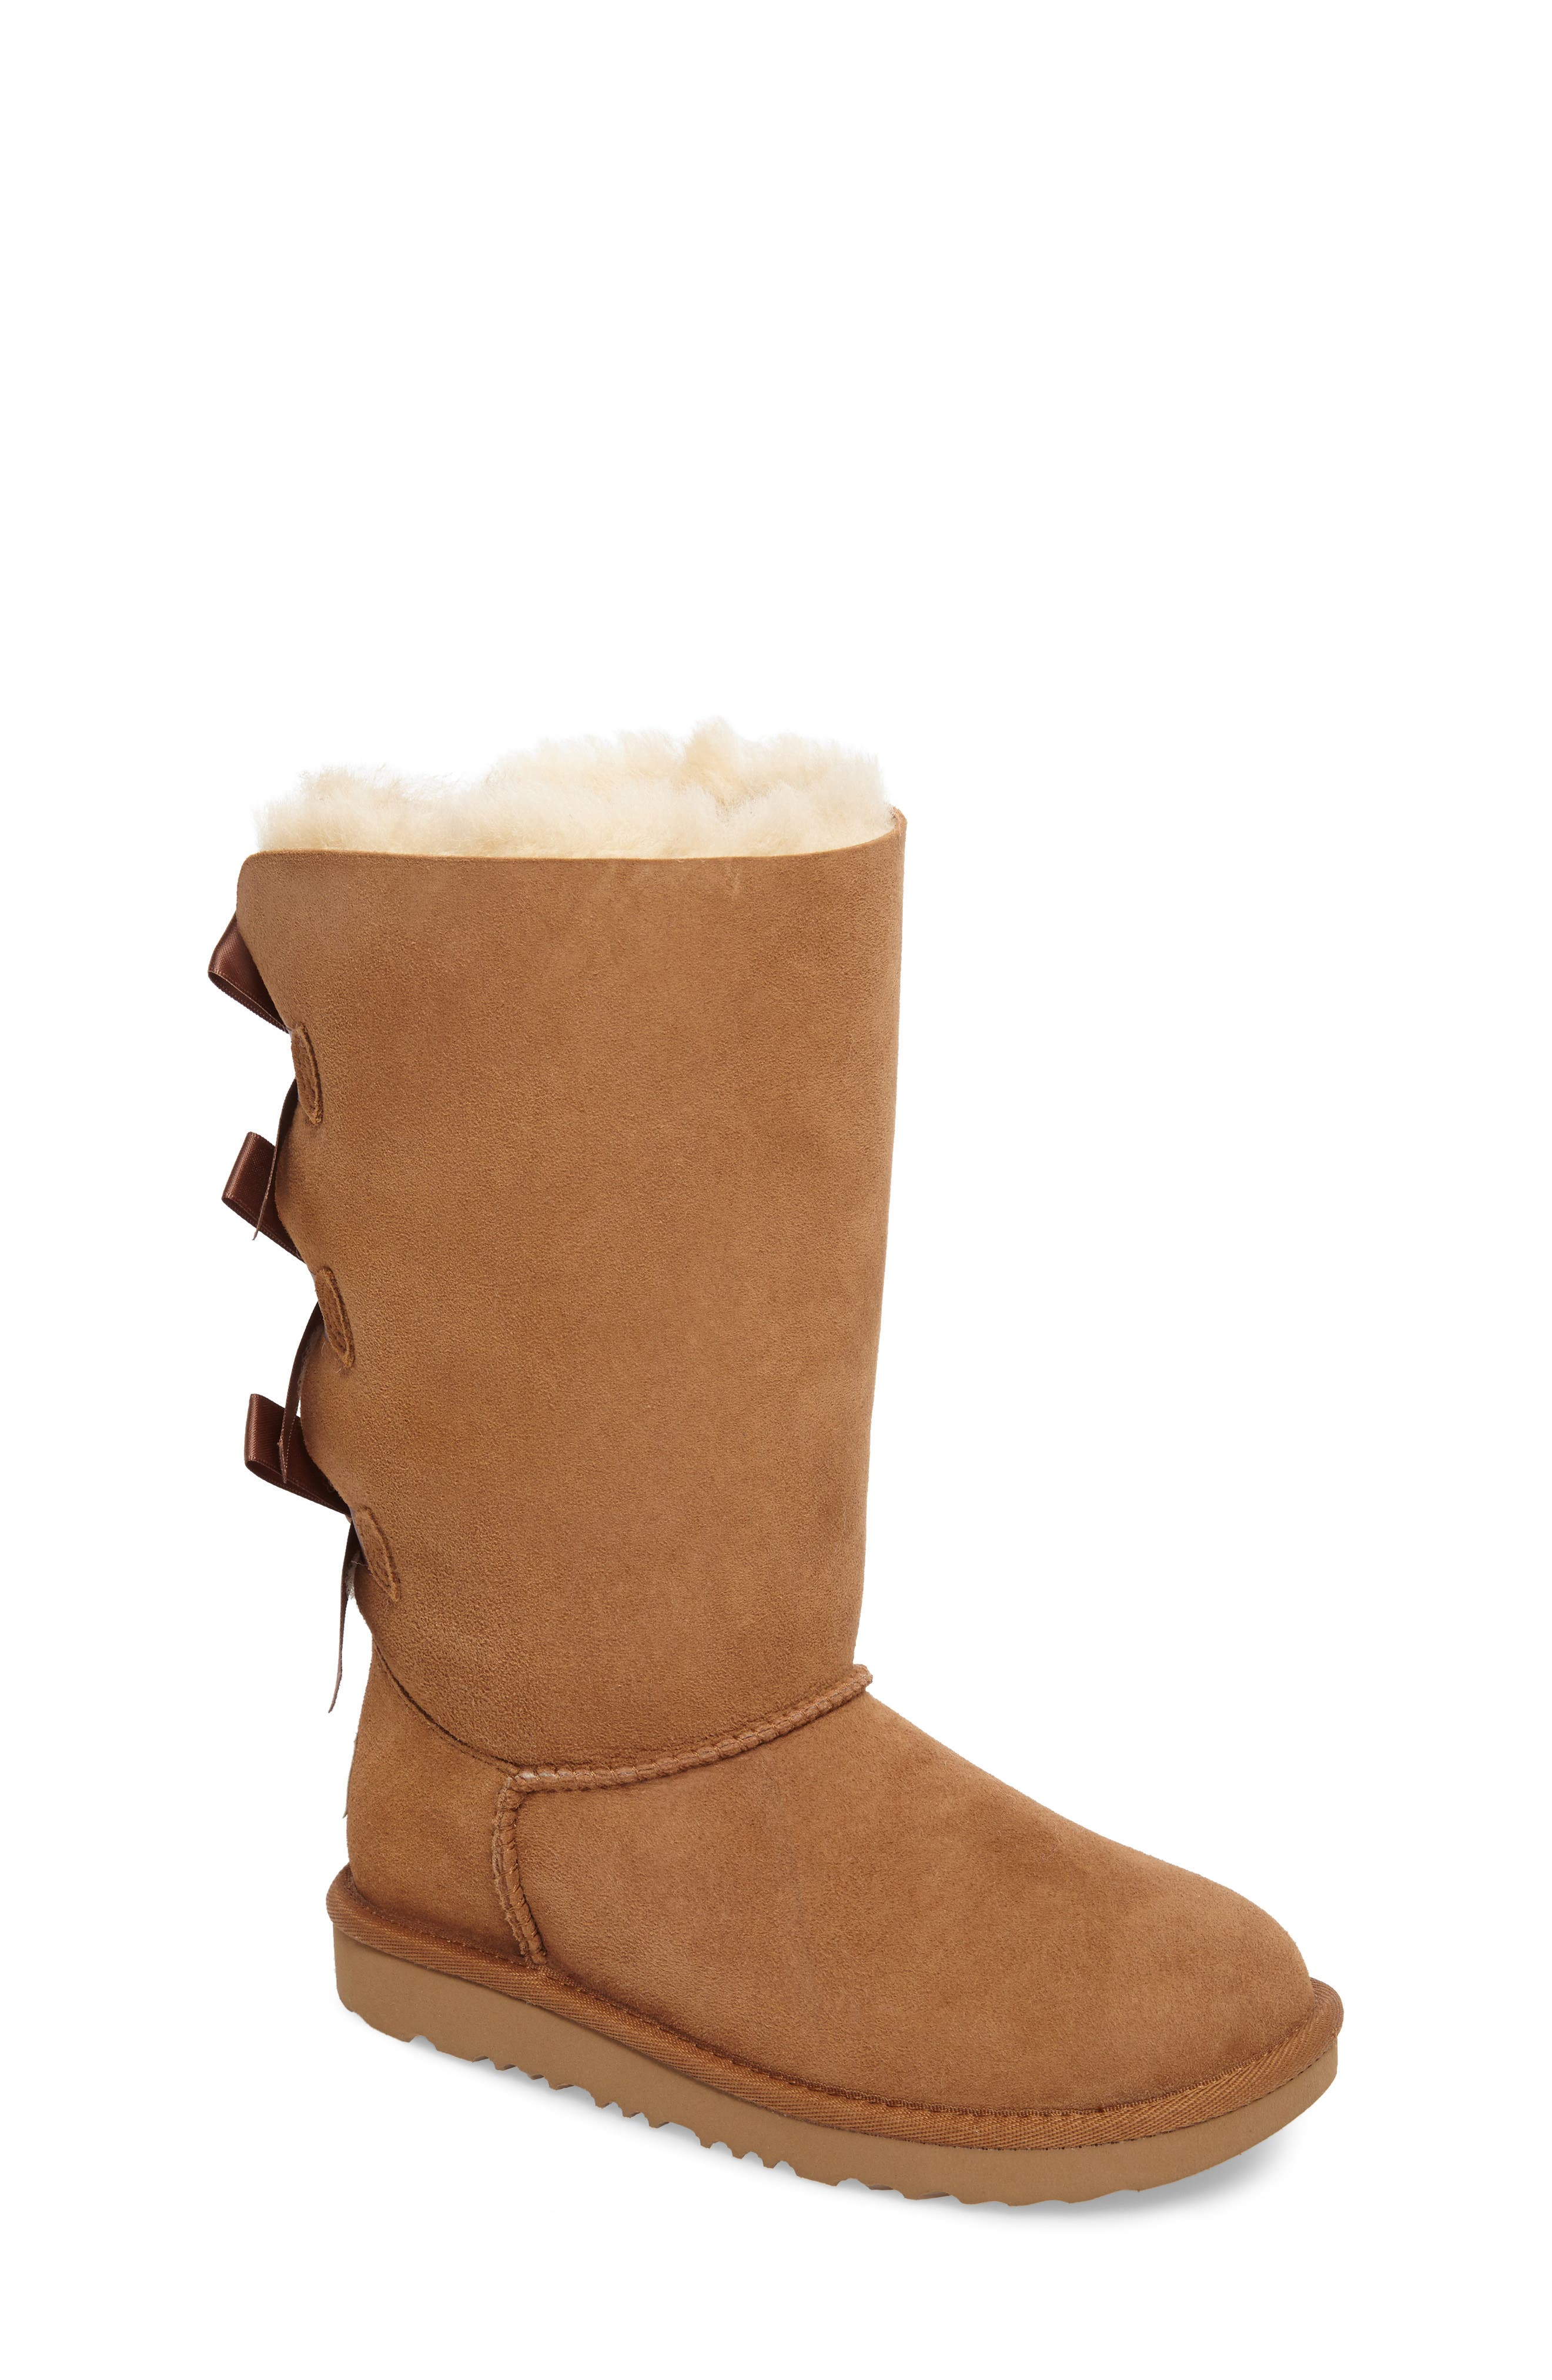 Bailey Bow Tall II Water Resistant Genuine Shearling Boot,                             Main thumbnail 1, color,                             Chestnut Brown